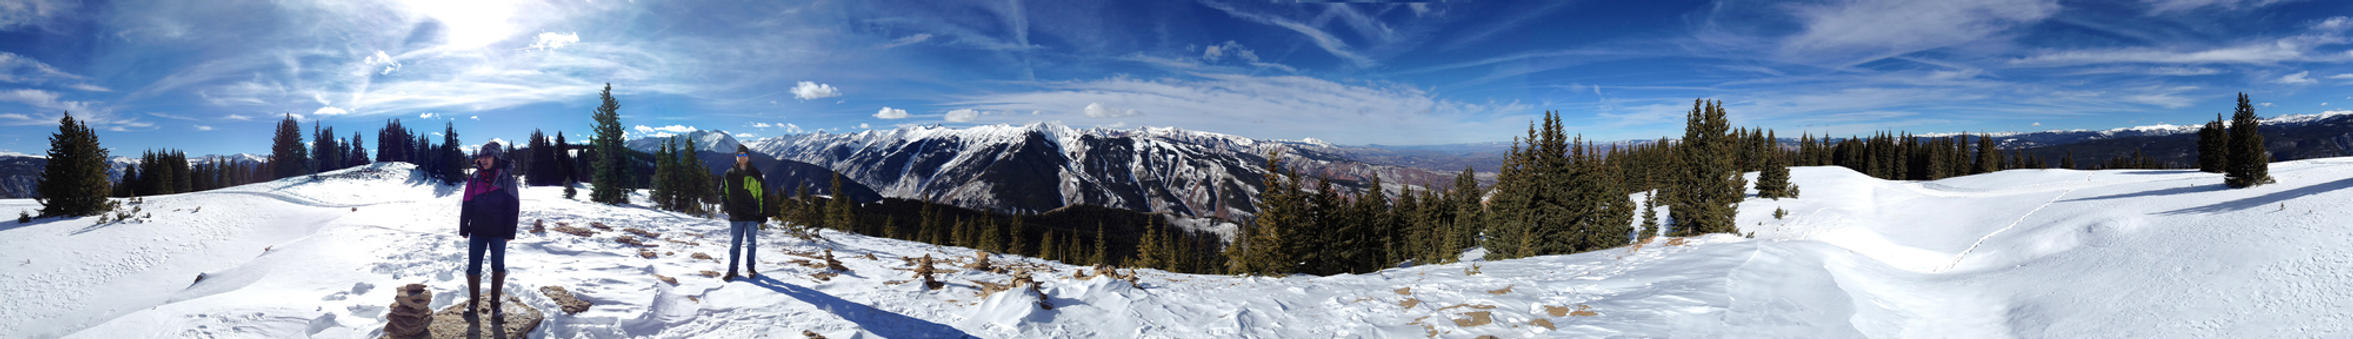 Aspen Mountain Panoramic by cosmicspark